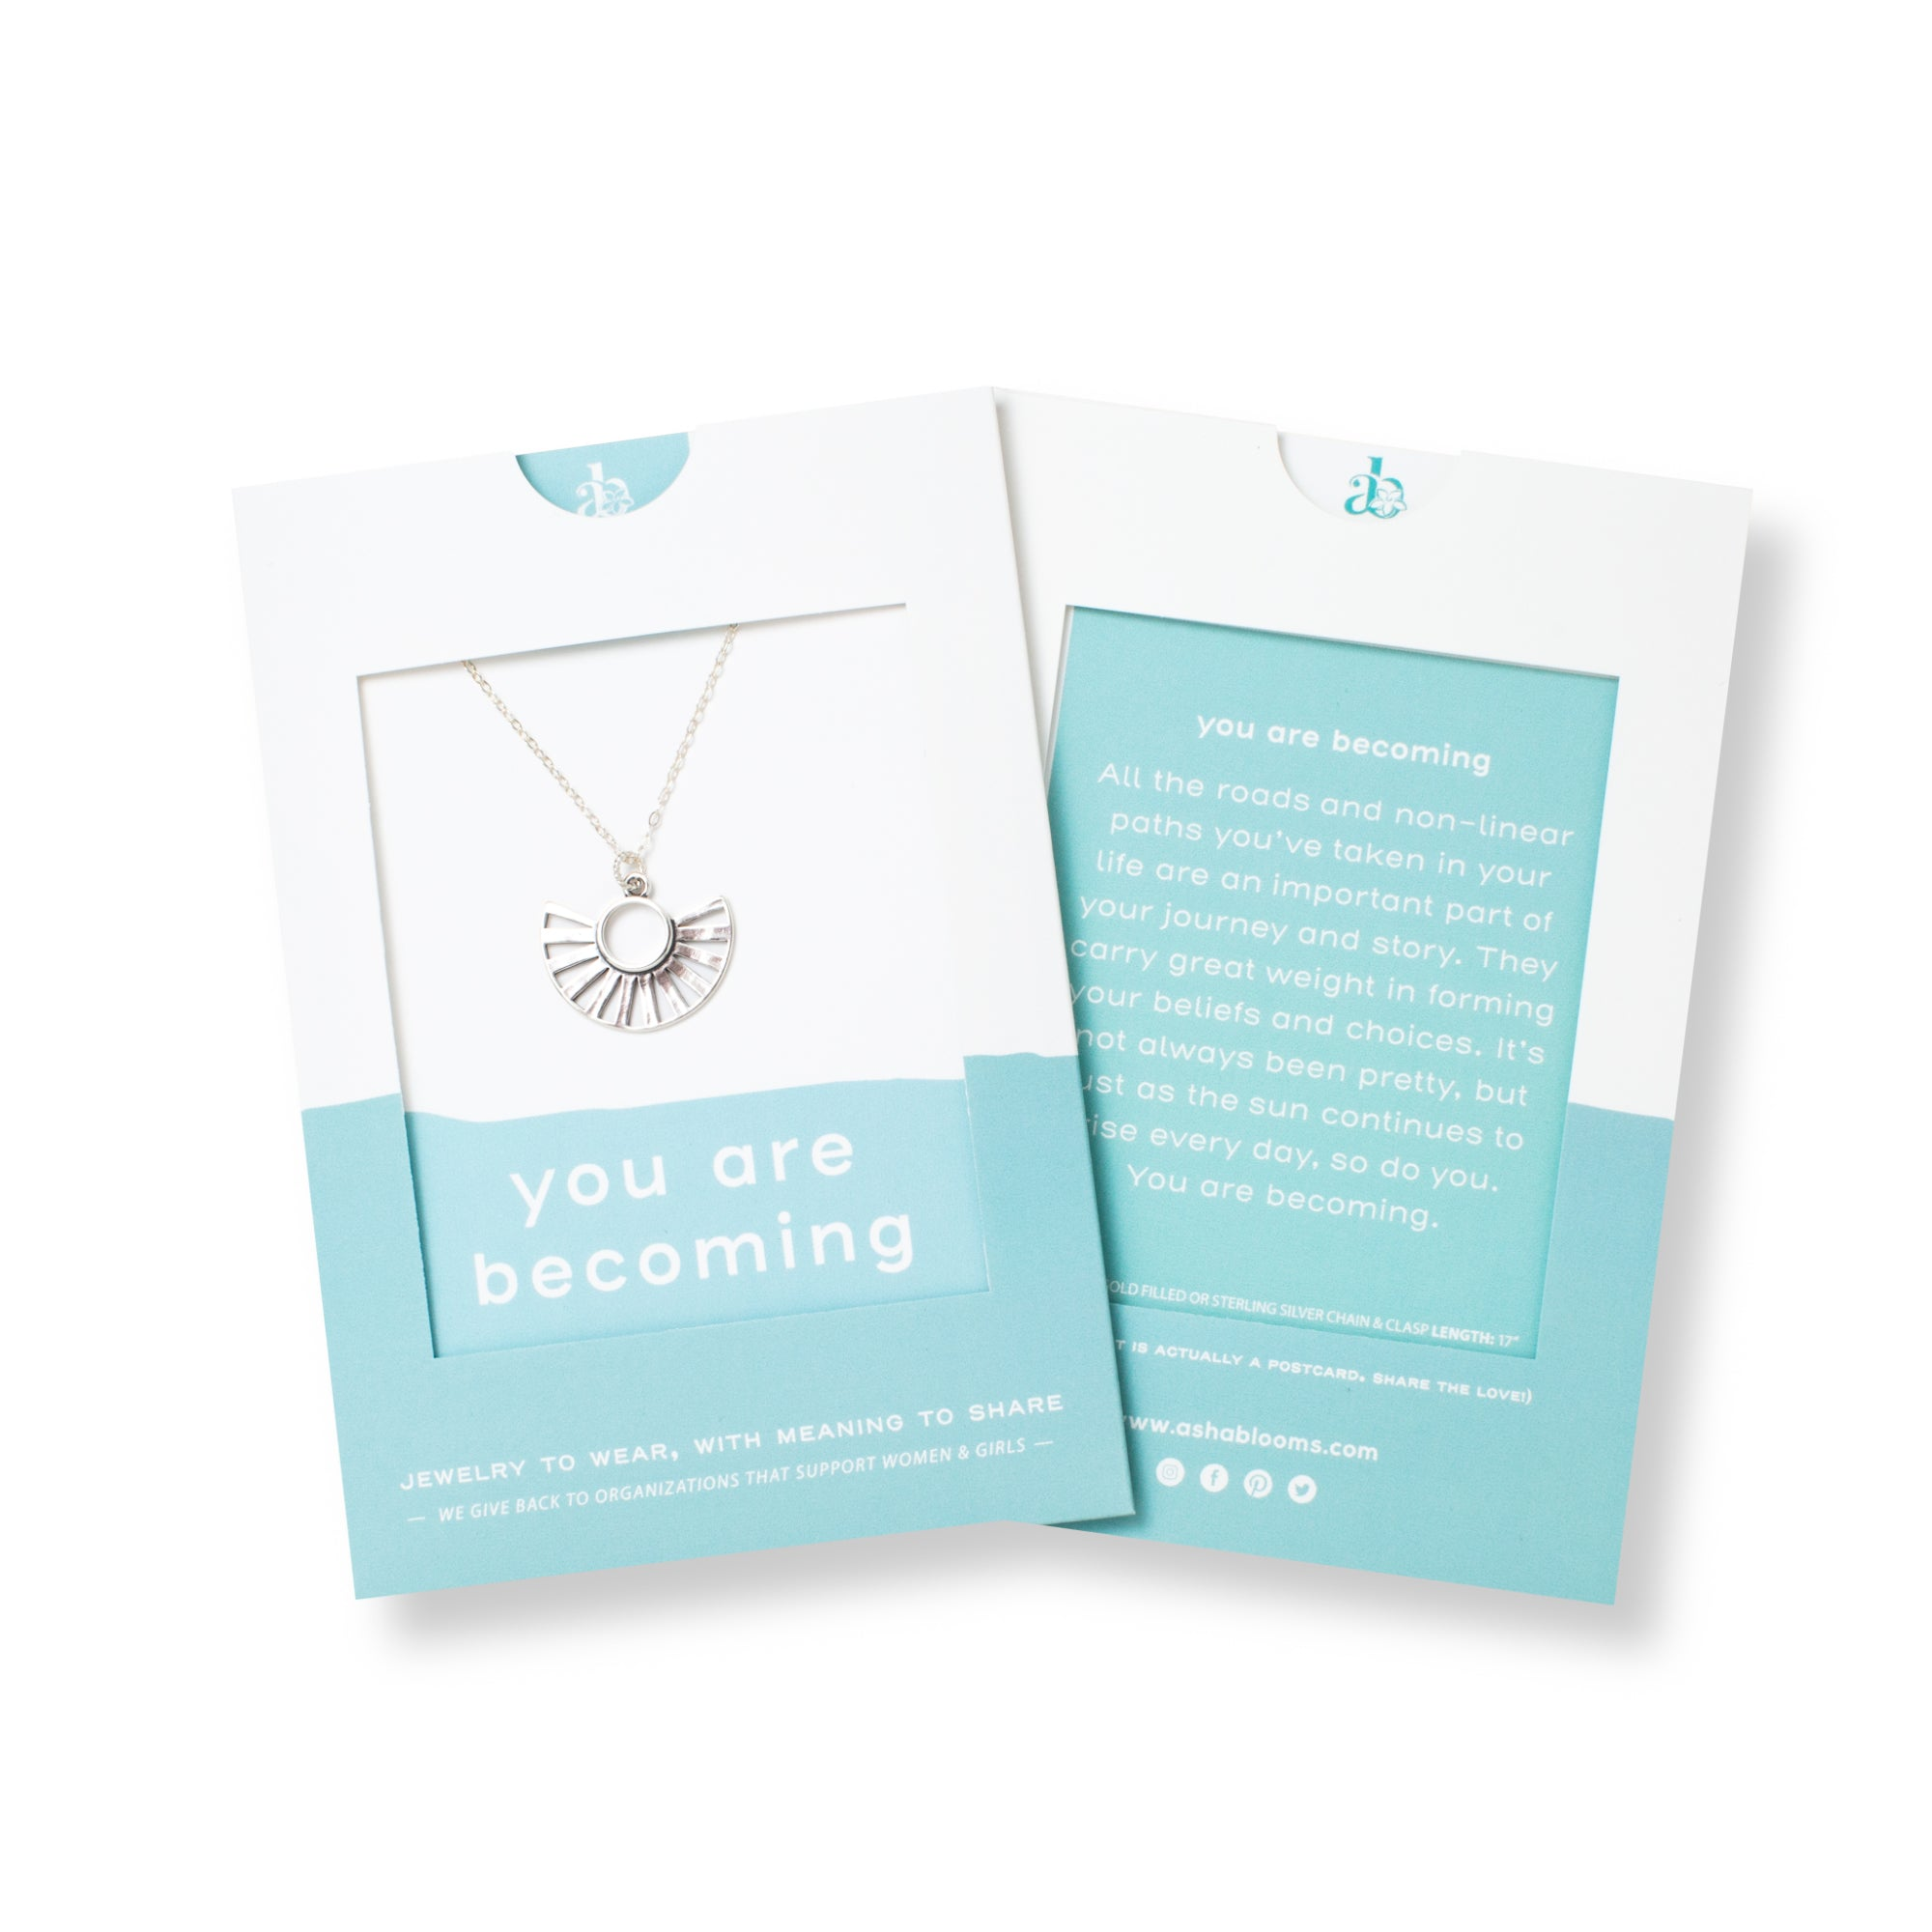 Silver Sun Pendant Necklace 'You Are Becoming' in Blue Gift Message Sleeve Packaging Photo by Asha Blooms